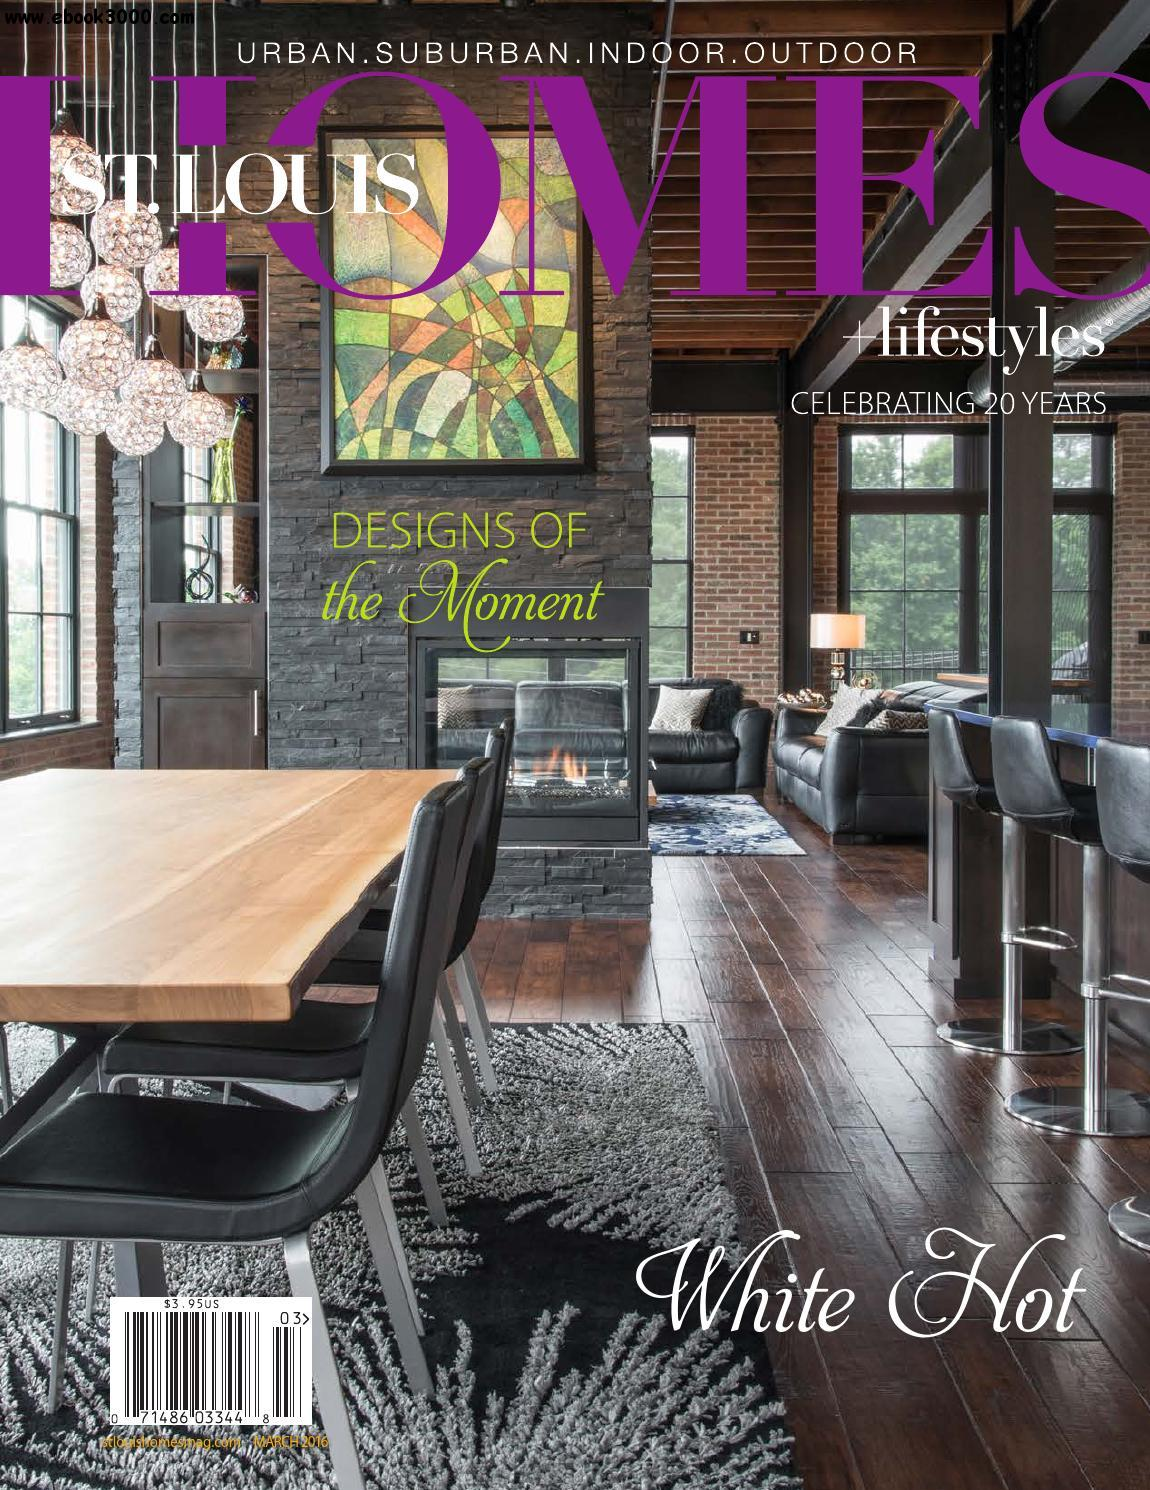 St. Louis Homes & Lifestyles - March 2016 free download